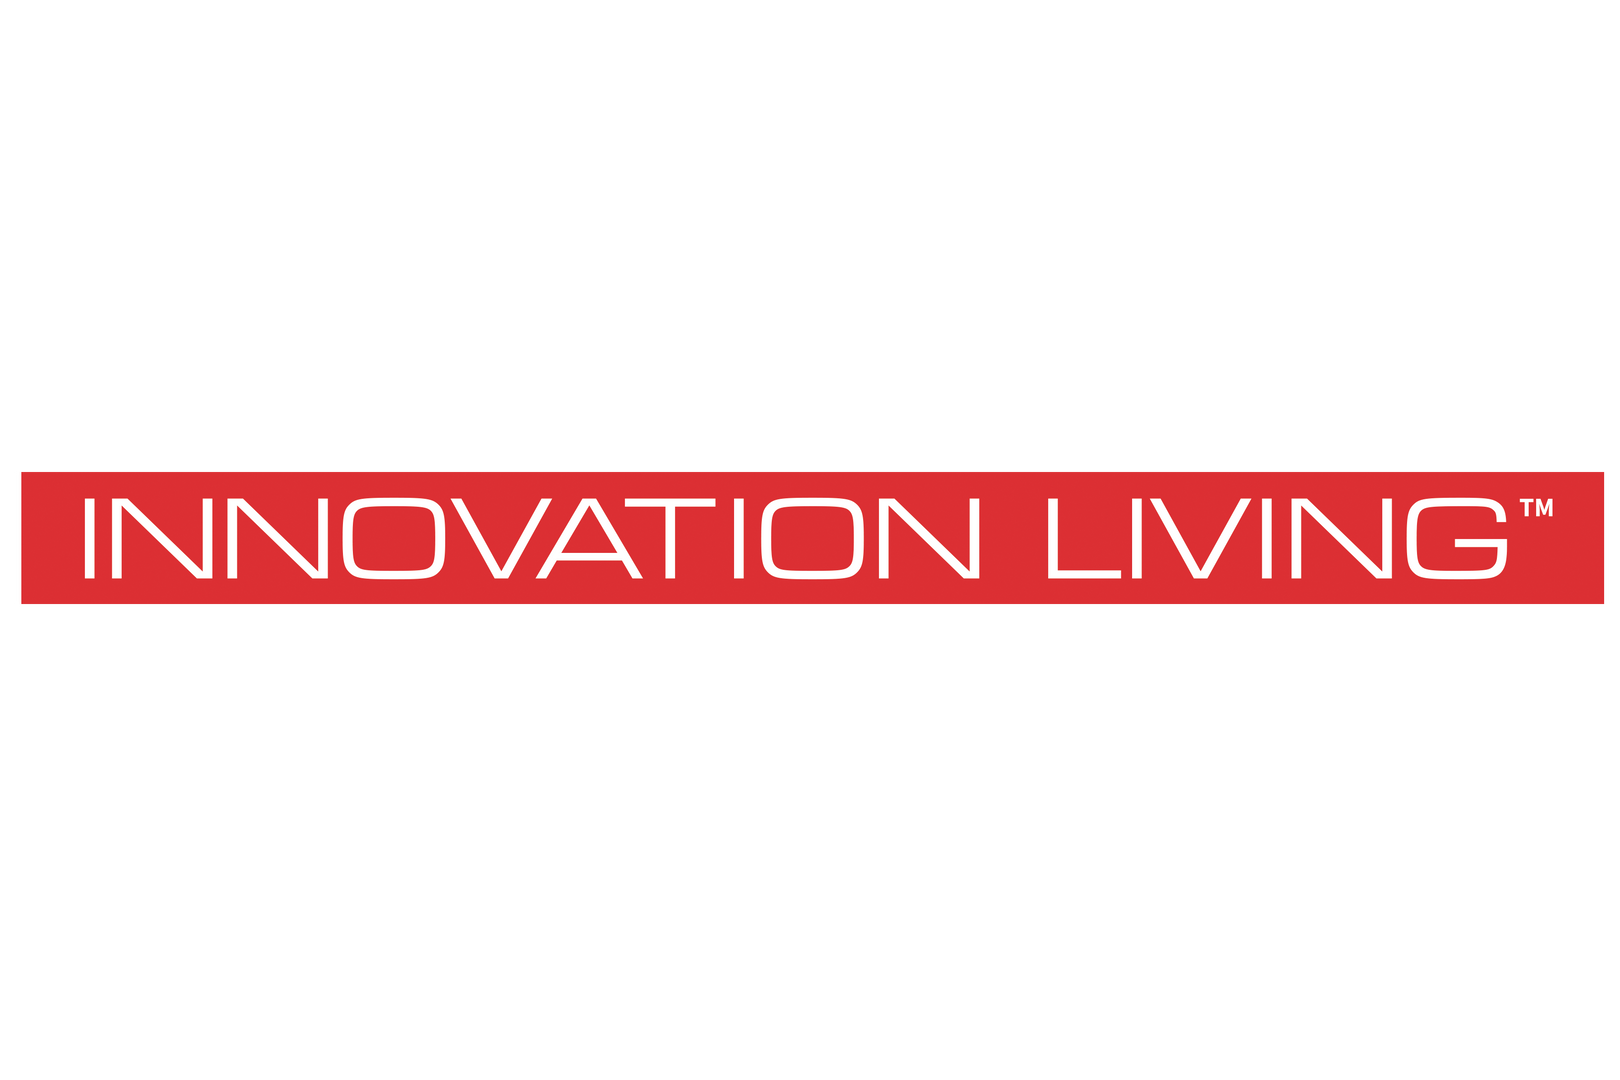 INNOVATION LIVING